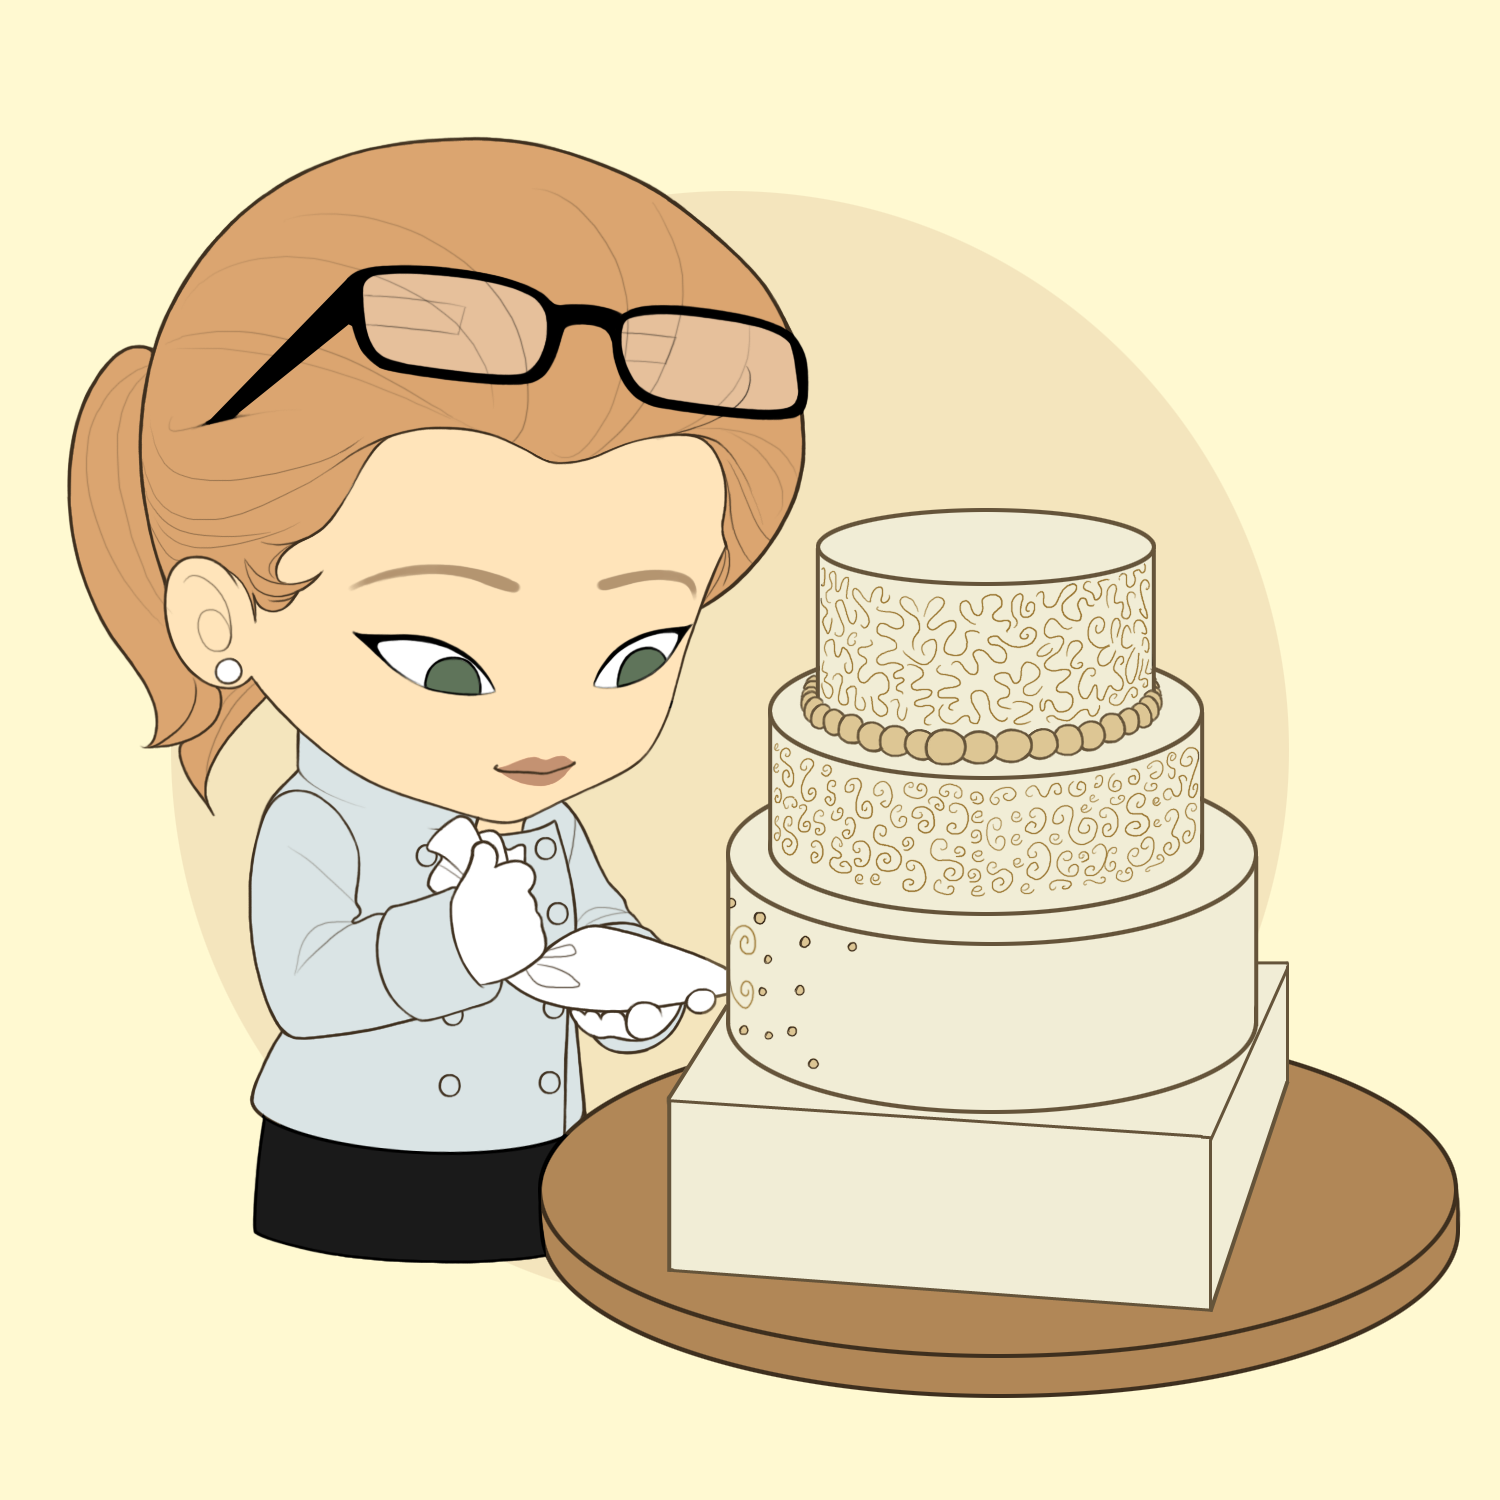 Victorious wedding plans, and a happy anniversary wish | Be ...